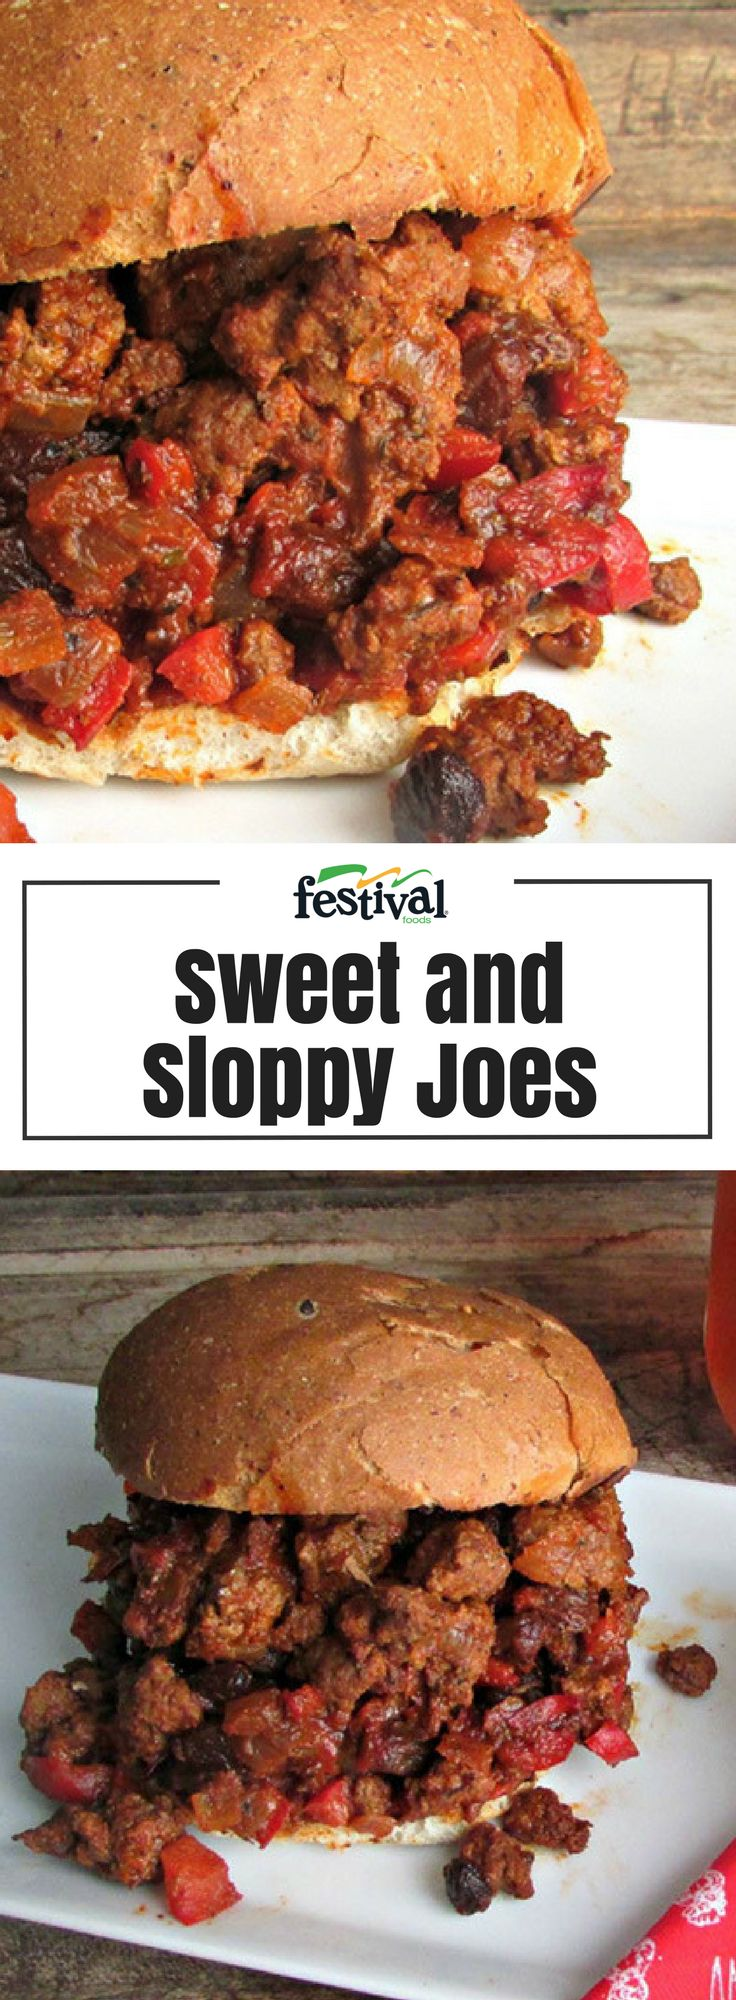 A twist on a classic, this sloppy Joe recipe adds sweet and smoky notes. A blend of spices, vegetables, and raisins will make this dish a party on your plate! #sloppyjoe #beefrecipes #sweetandsmoky #raisins #sandwiches #familyfavorites